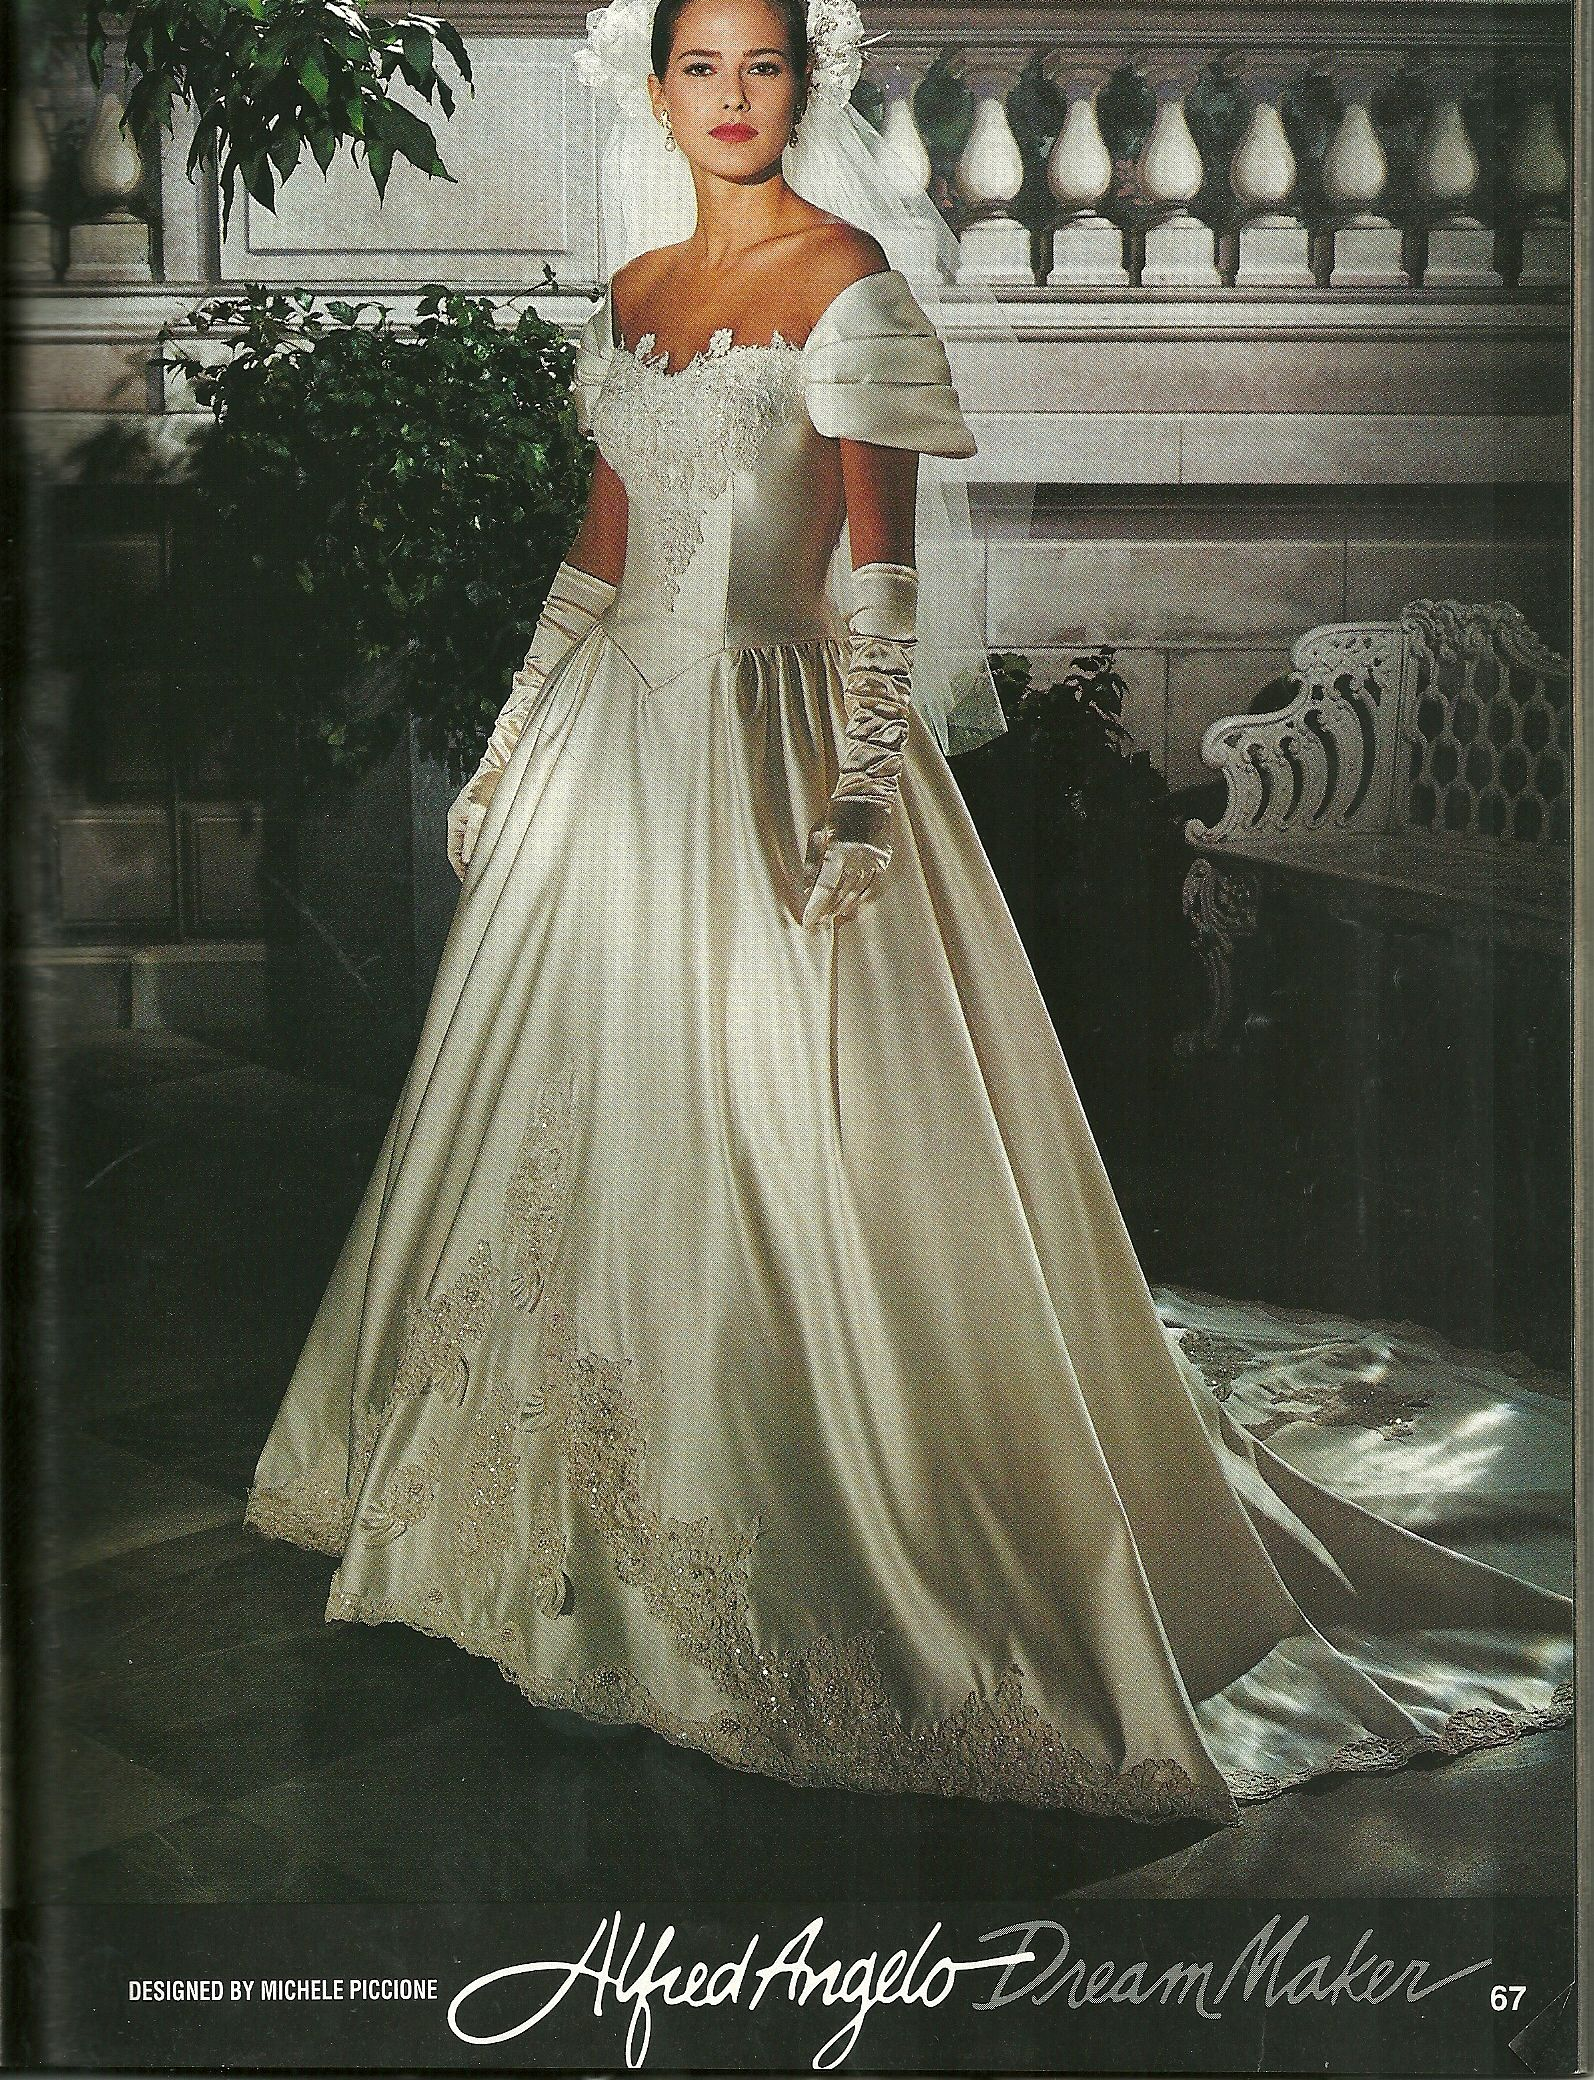 Alfred Angelo 1992 Bridal Gowns Vintage Beautiful Wedding Gowns